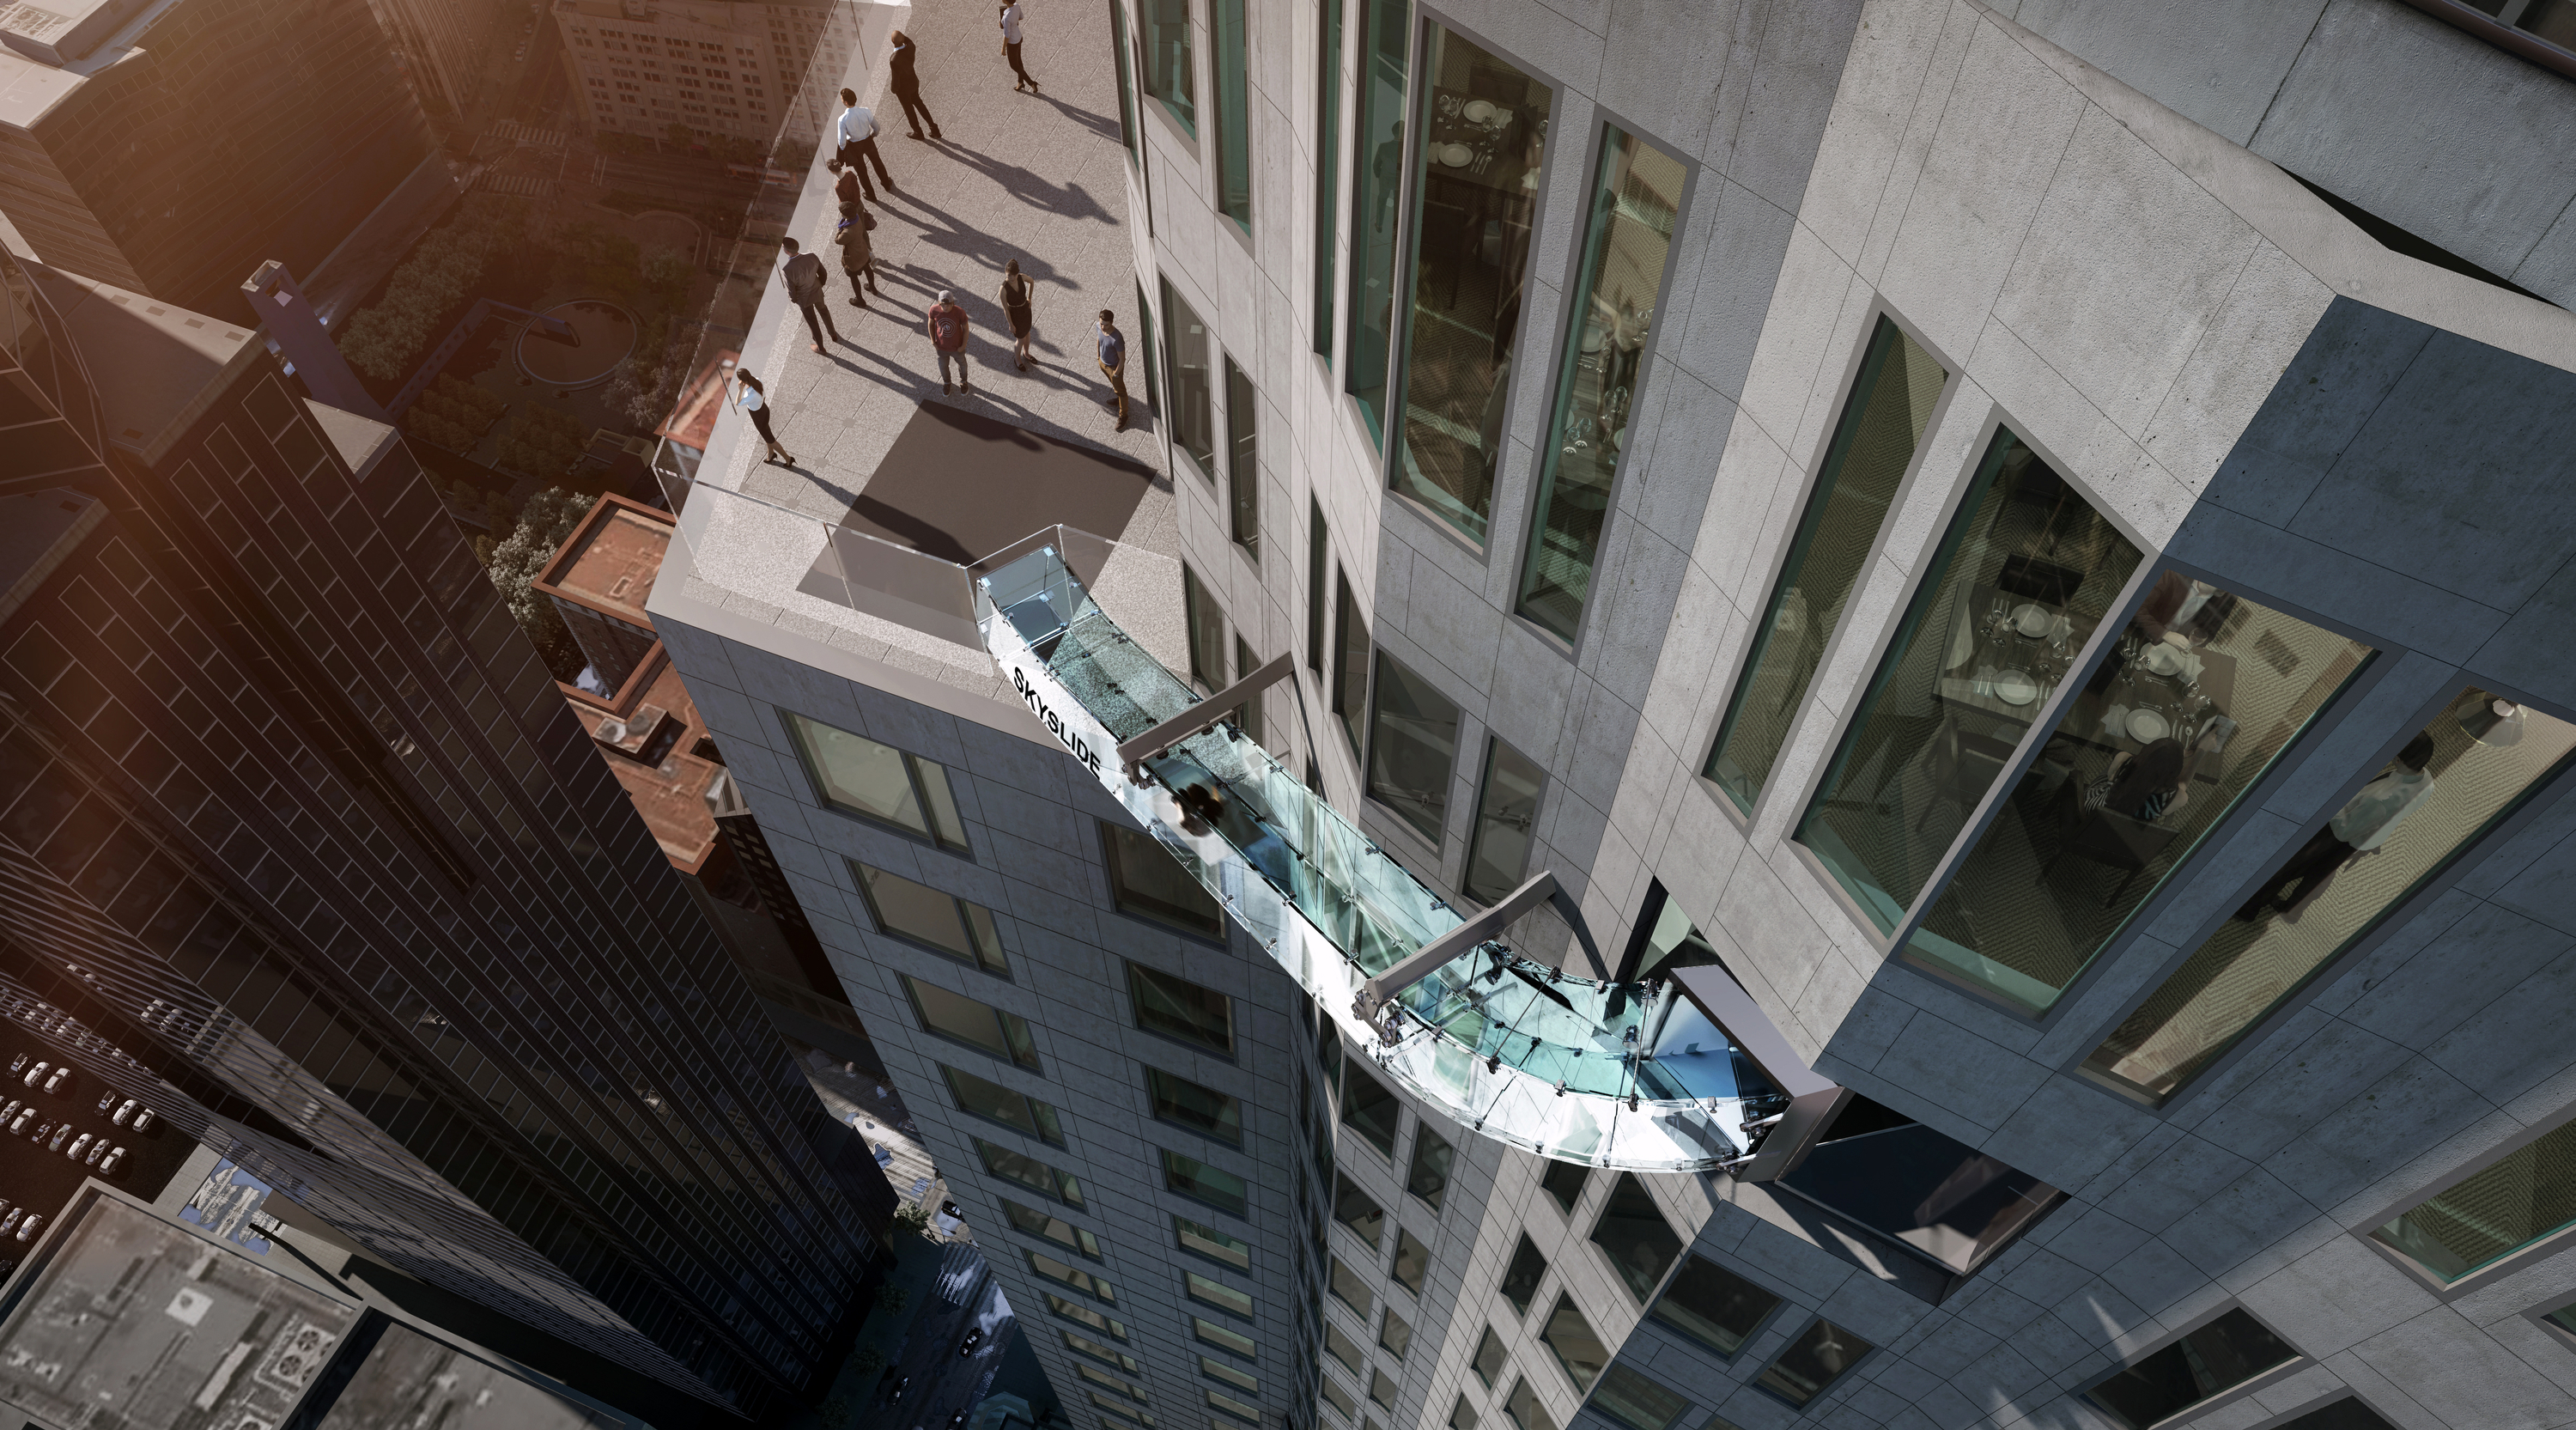 This undated artist's rendering provided by Overseas Union Enterprise Limited shows a glass slide 1,000 feet above the ground off the side of the U.S. Bank Tower in downtown Los Angeles.